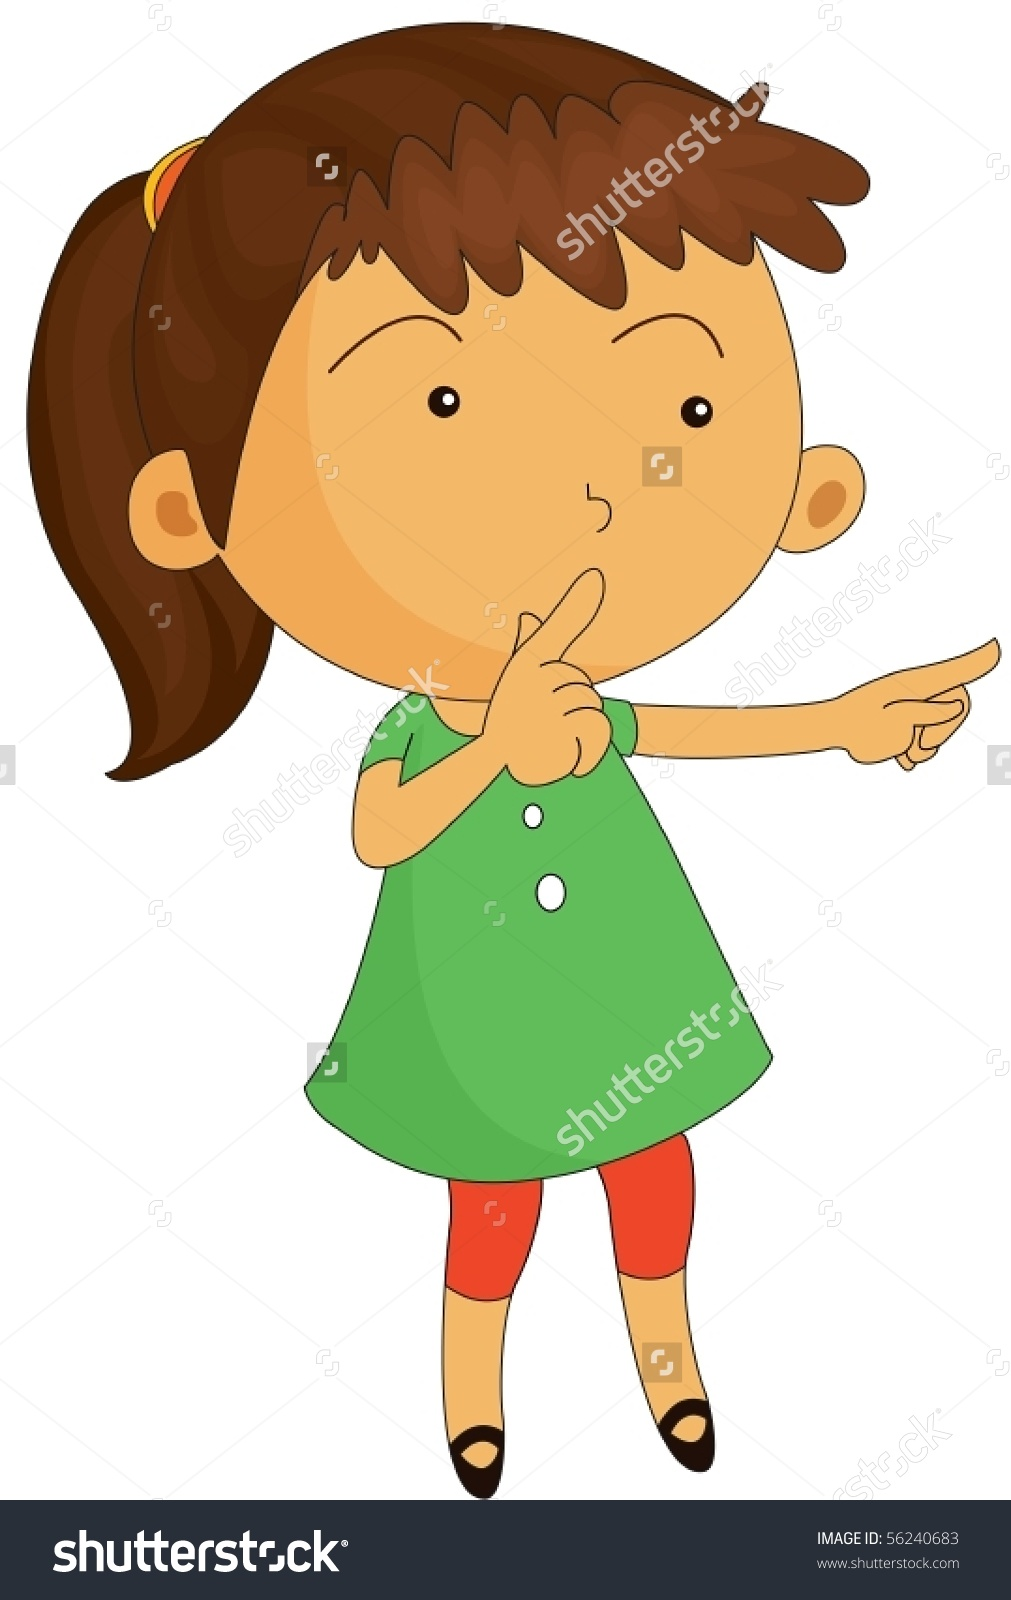 Illustration Of A Girl Keeping Silence On White Background.